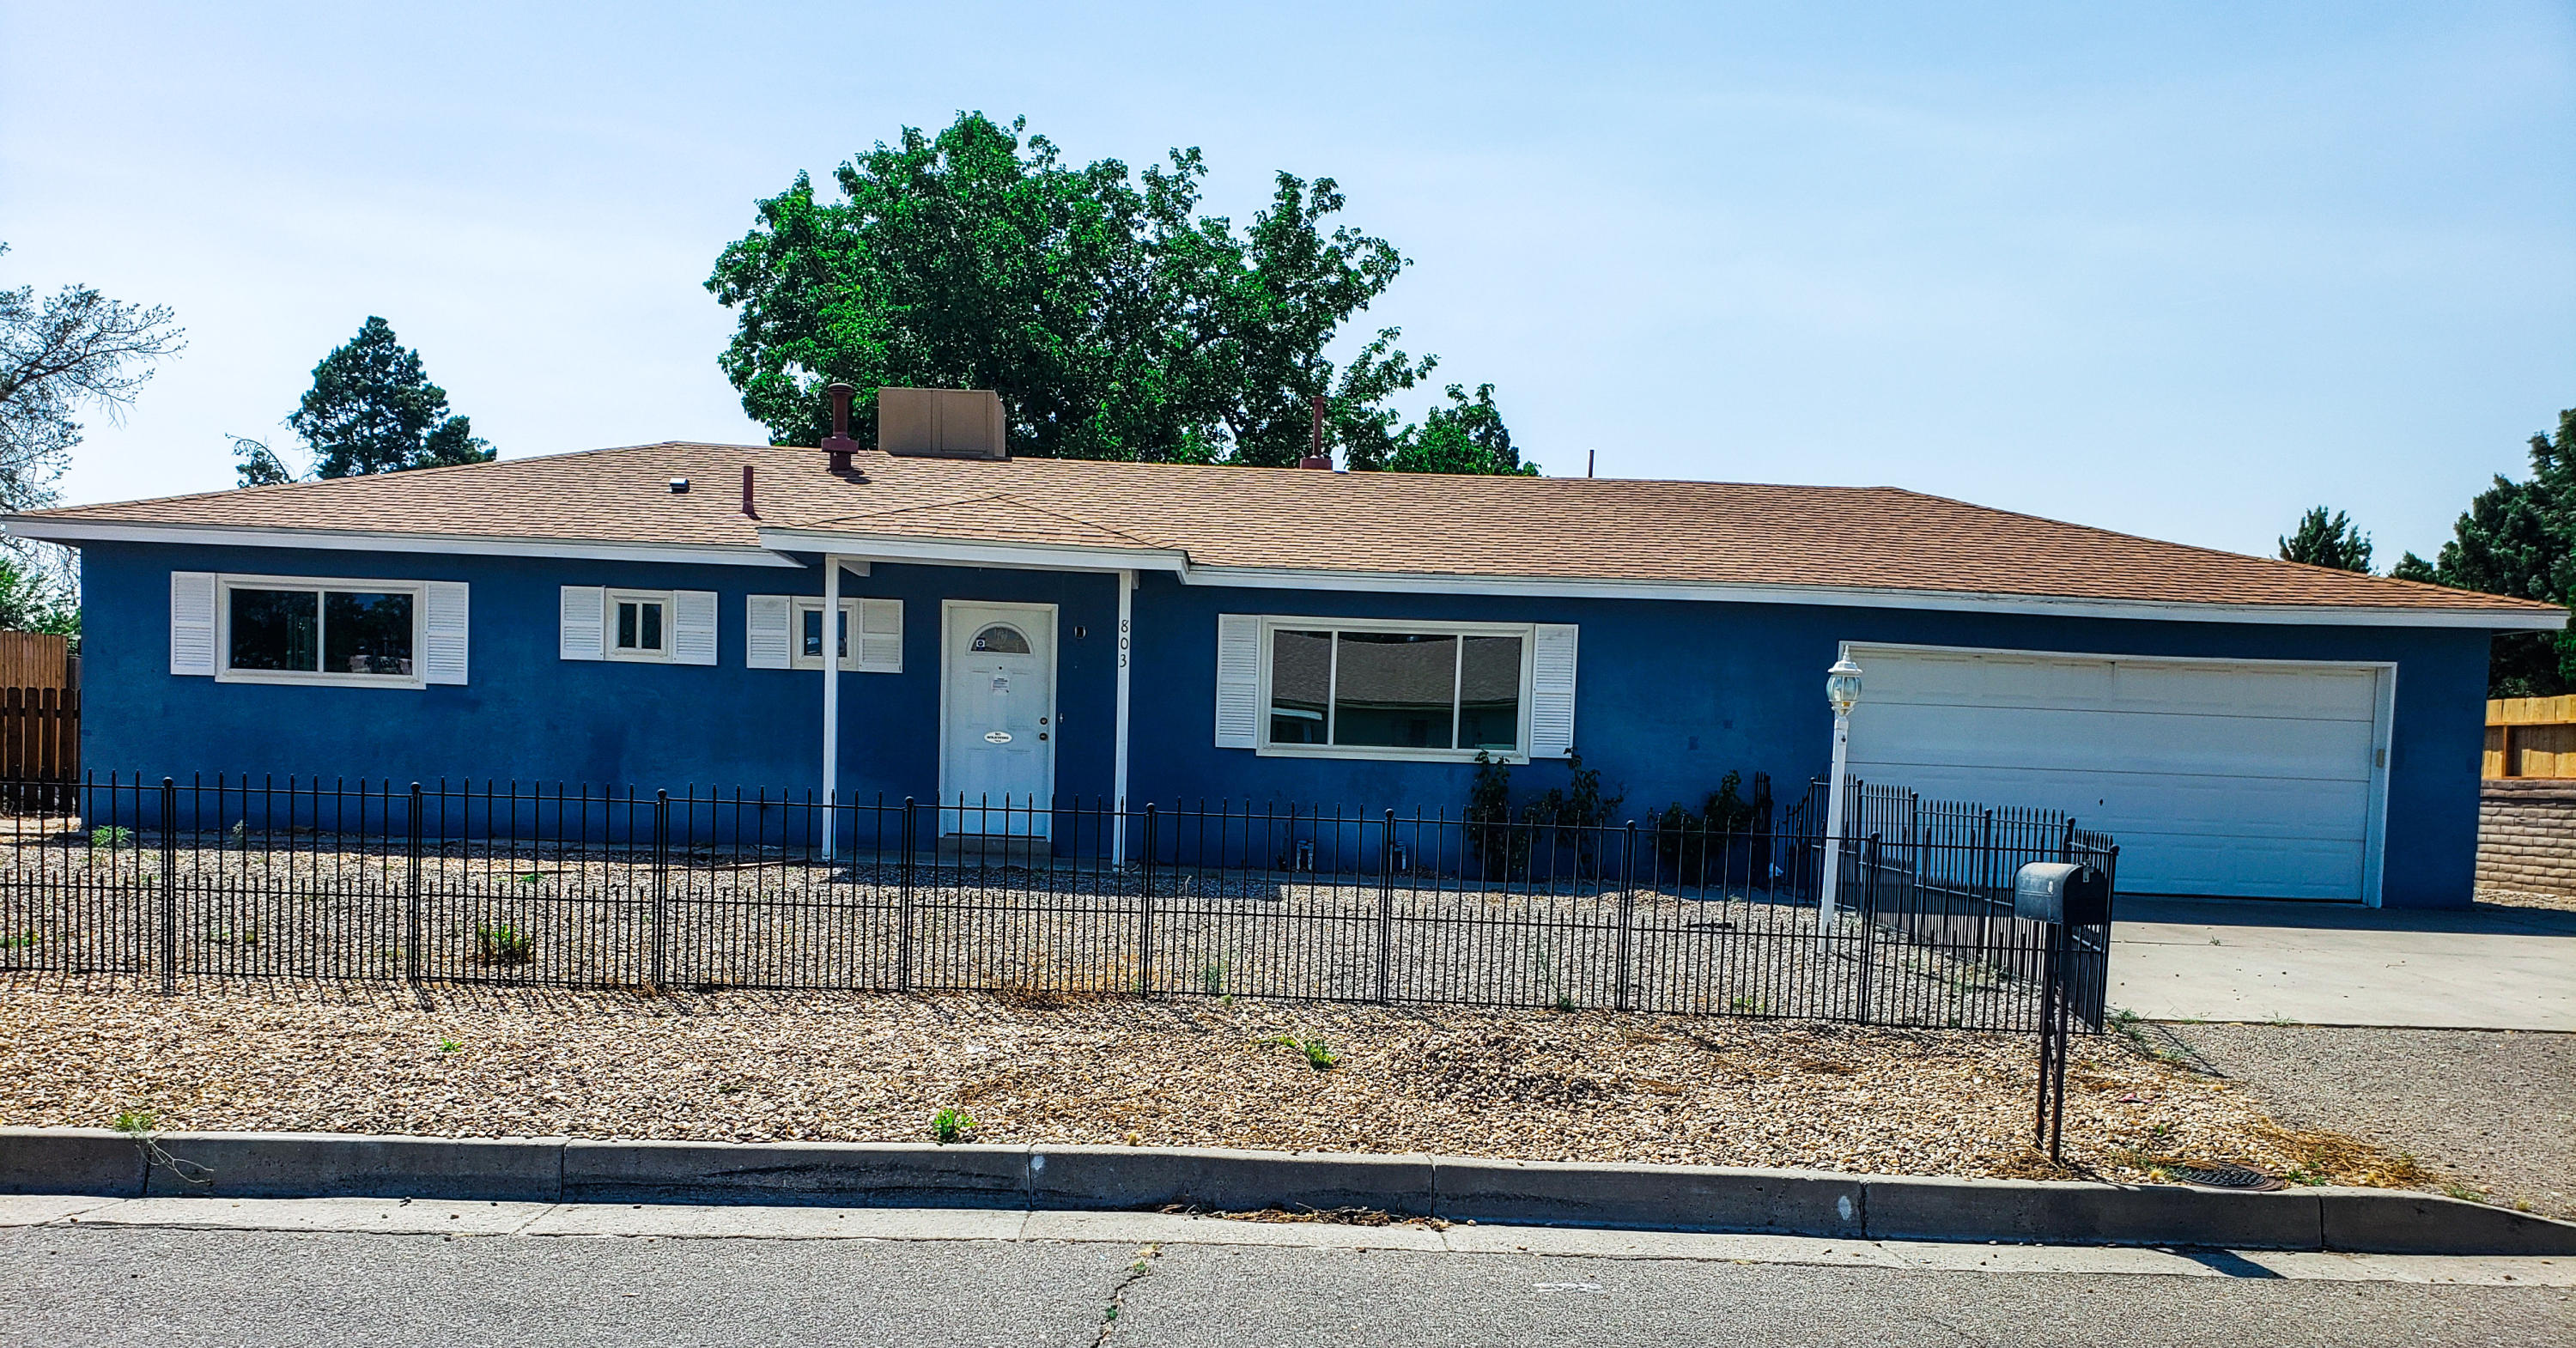 Large TWO Bed and 1.75 BATH. Walk-in closets, tile in all of the wet areas, brand new windows of a year ago, finished 2 car garage with opener! Sits on a large lot with backyard access for all of your toys!SHORT SALE